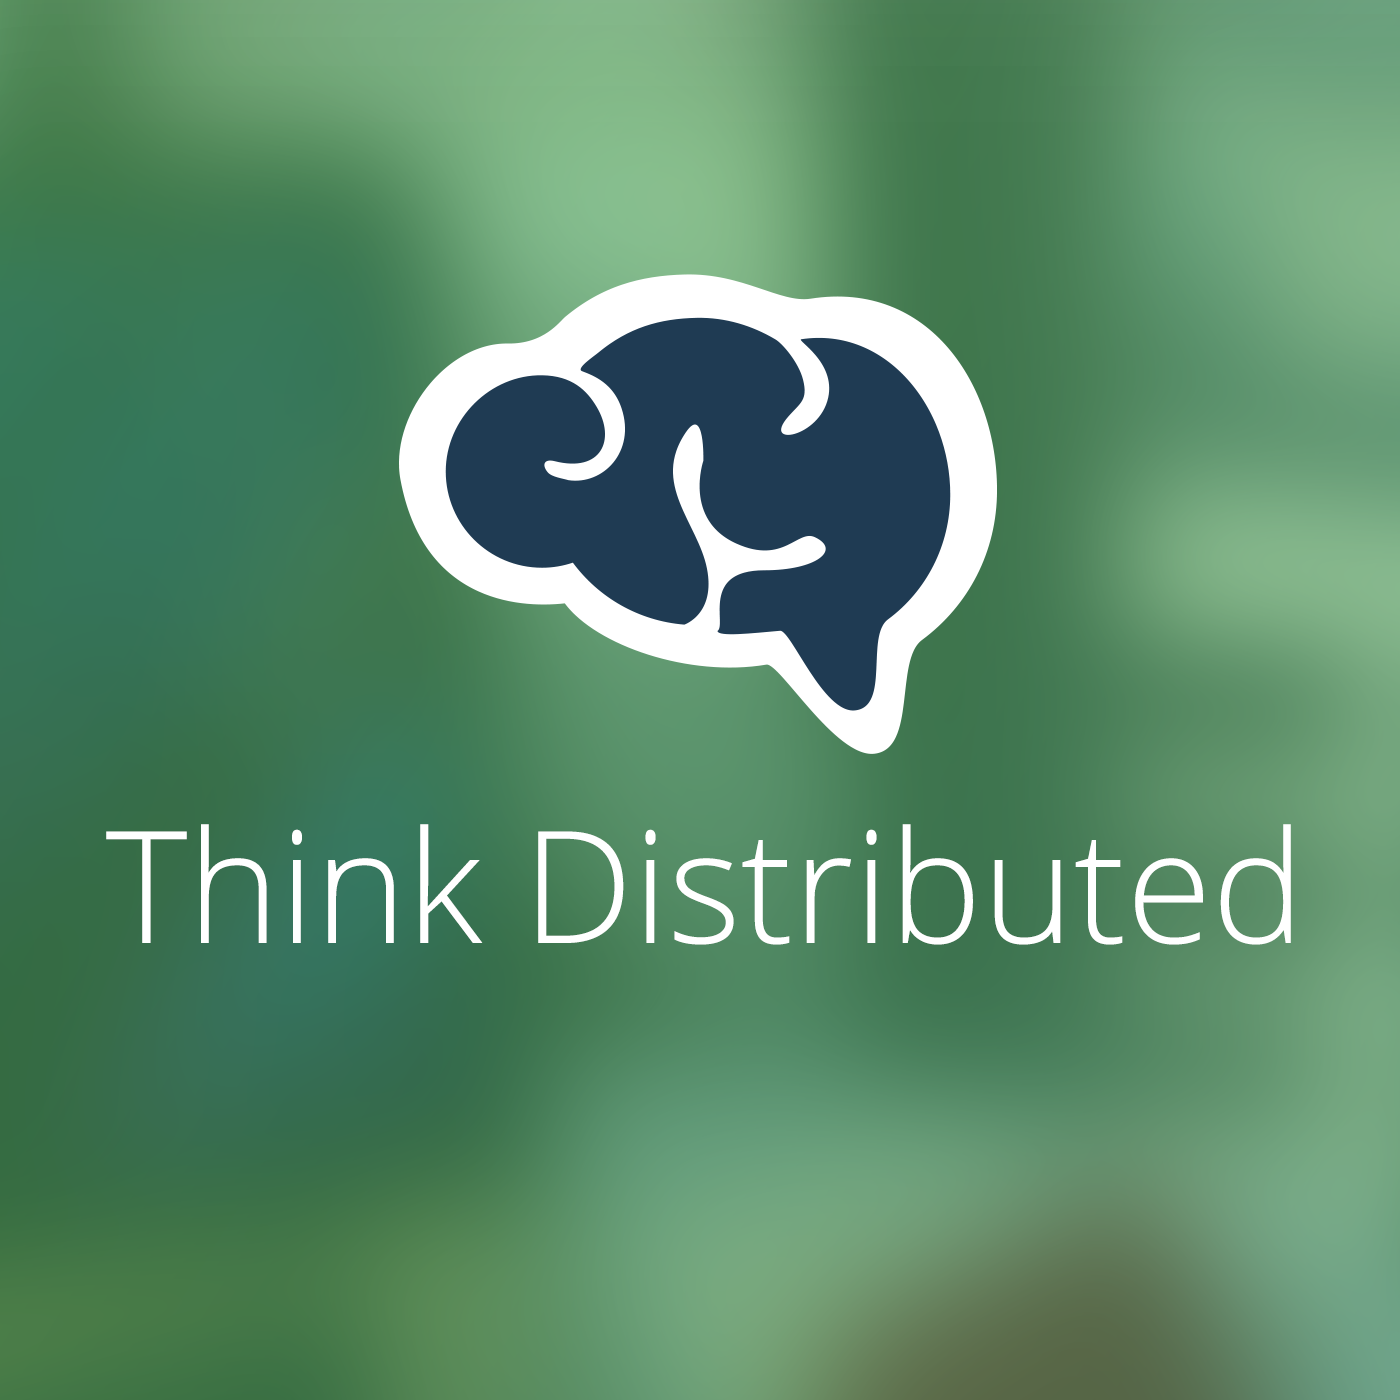 Think Distributed